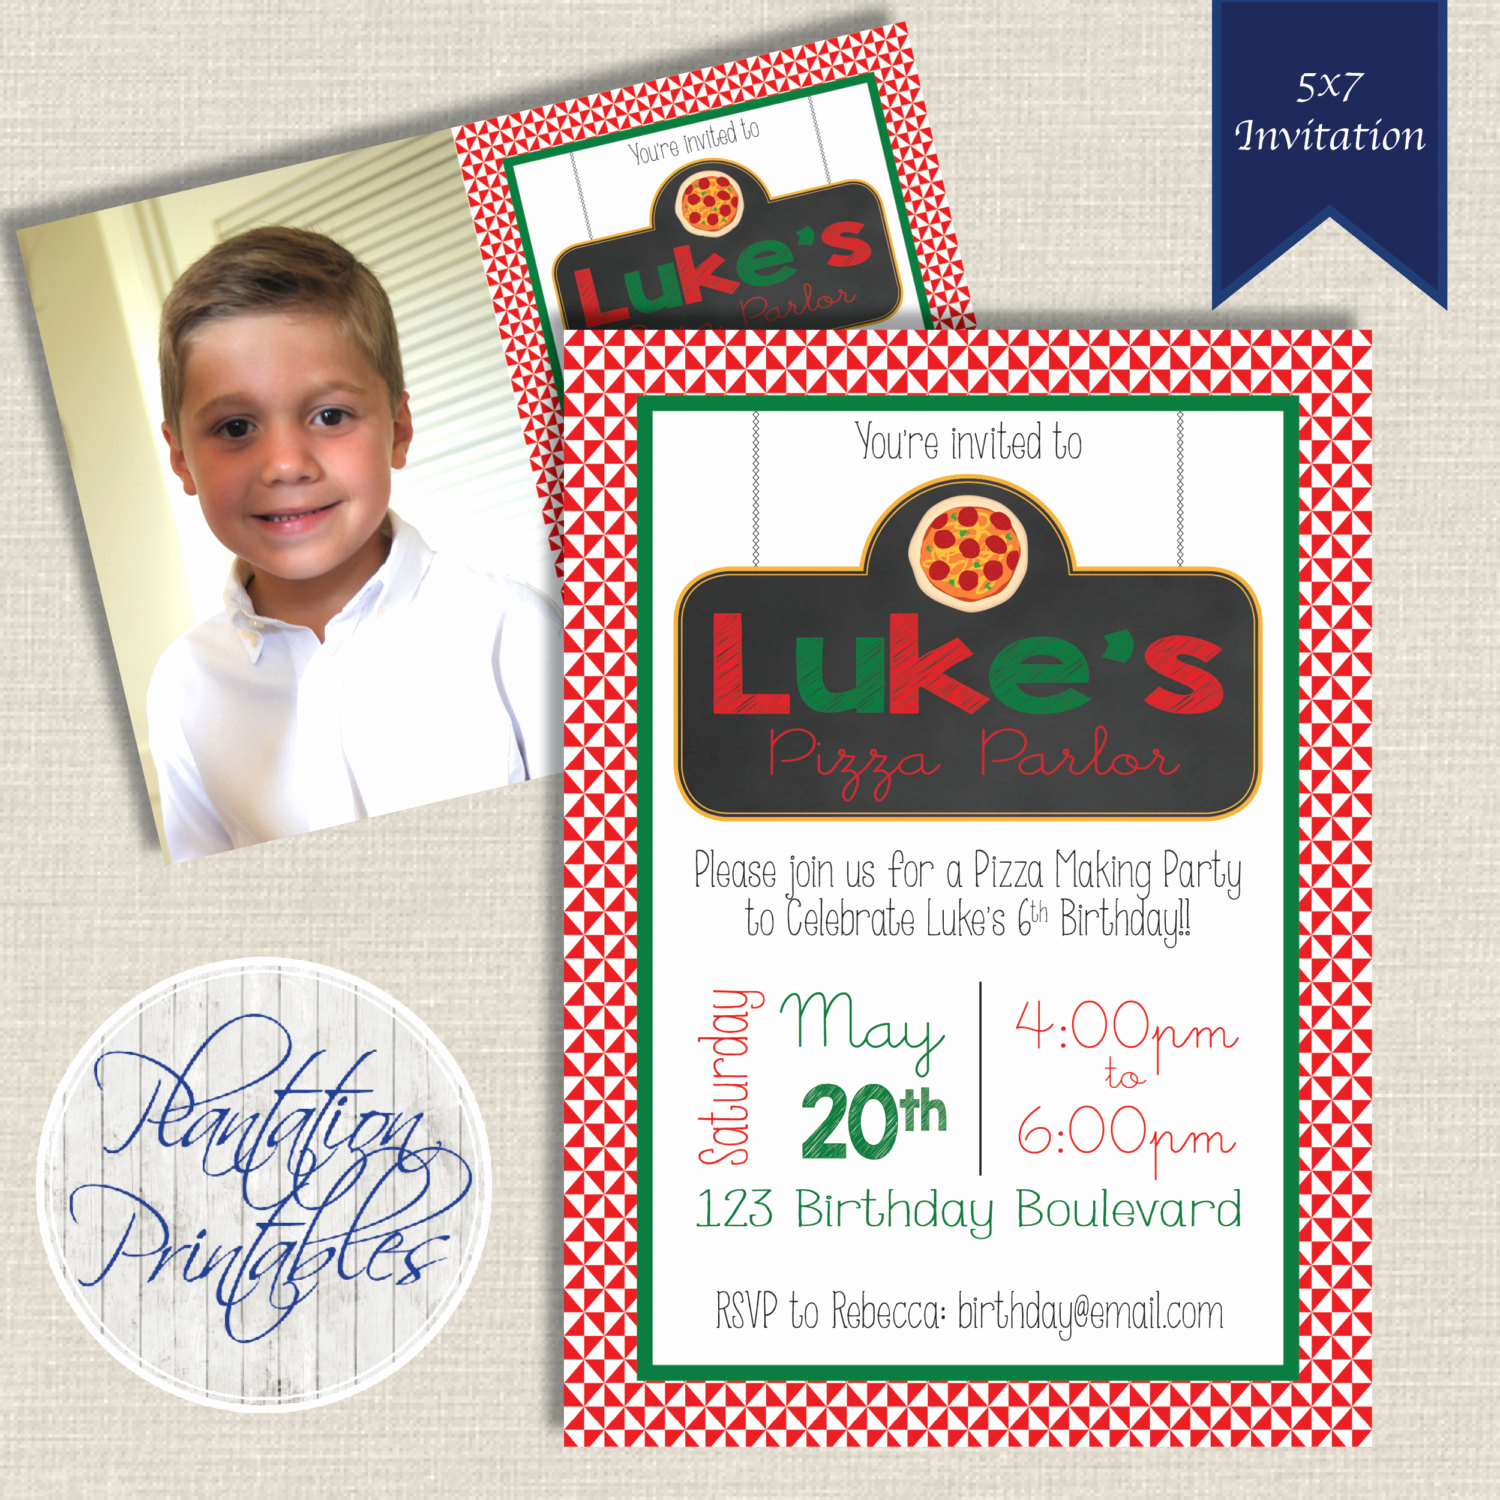 Pizza Party Invitation Wording Best Of Pizza Party Birthday Invitation Digital File You Print